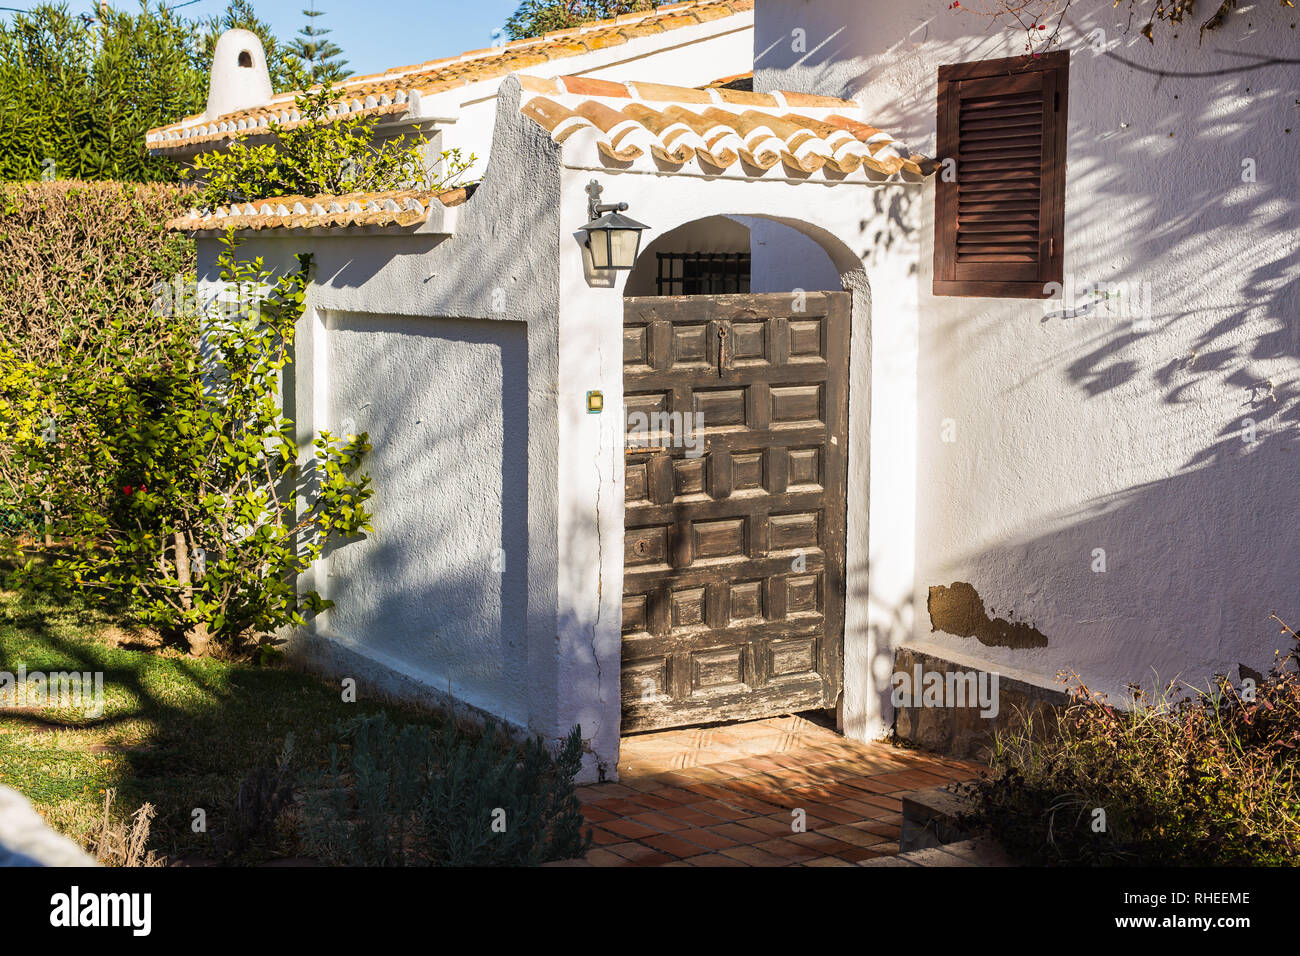 Design Architecture And Building Concept The Entrance Gate Of The House Stock Photo Alamy